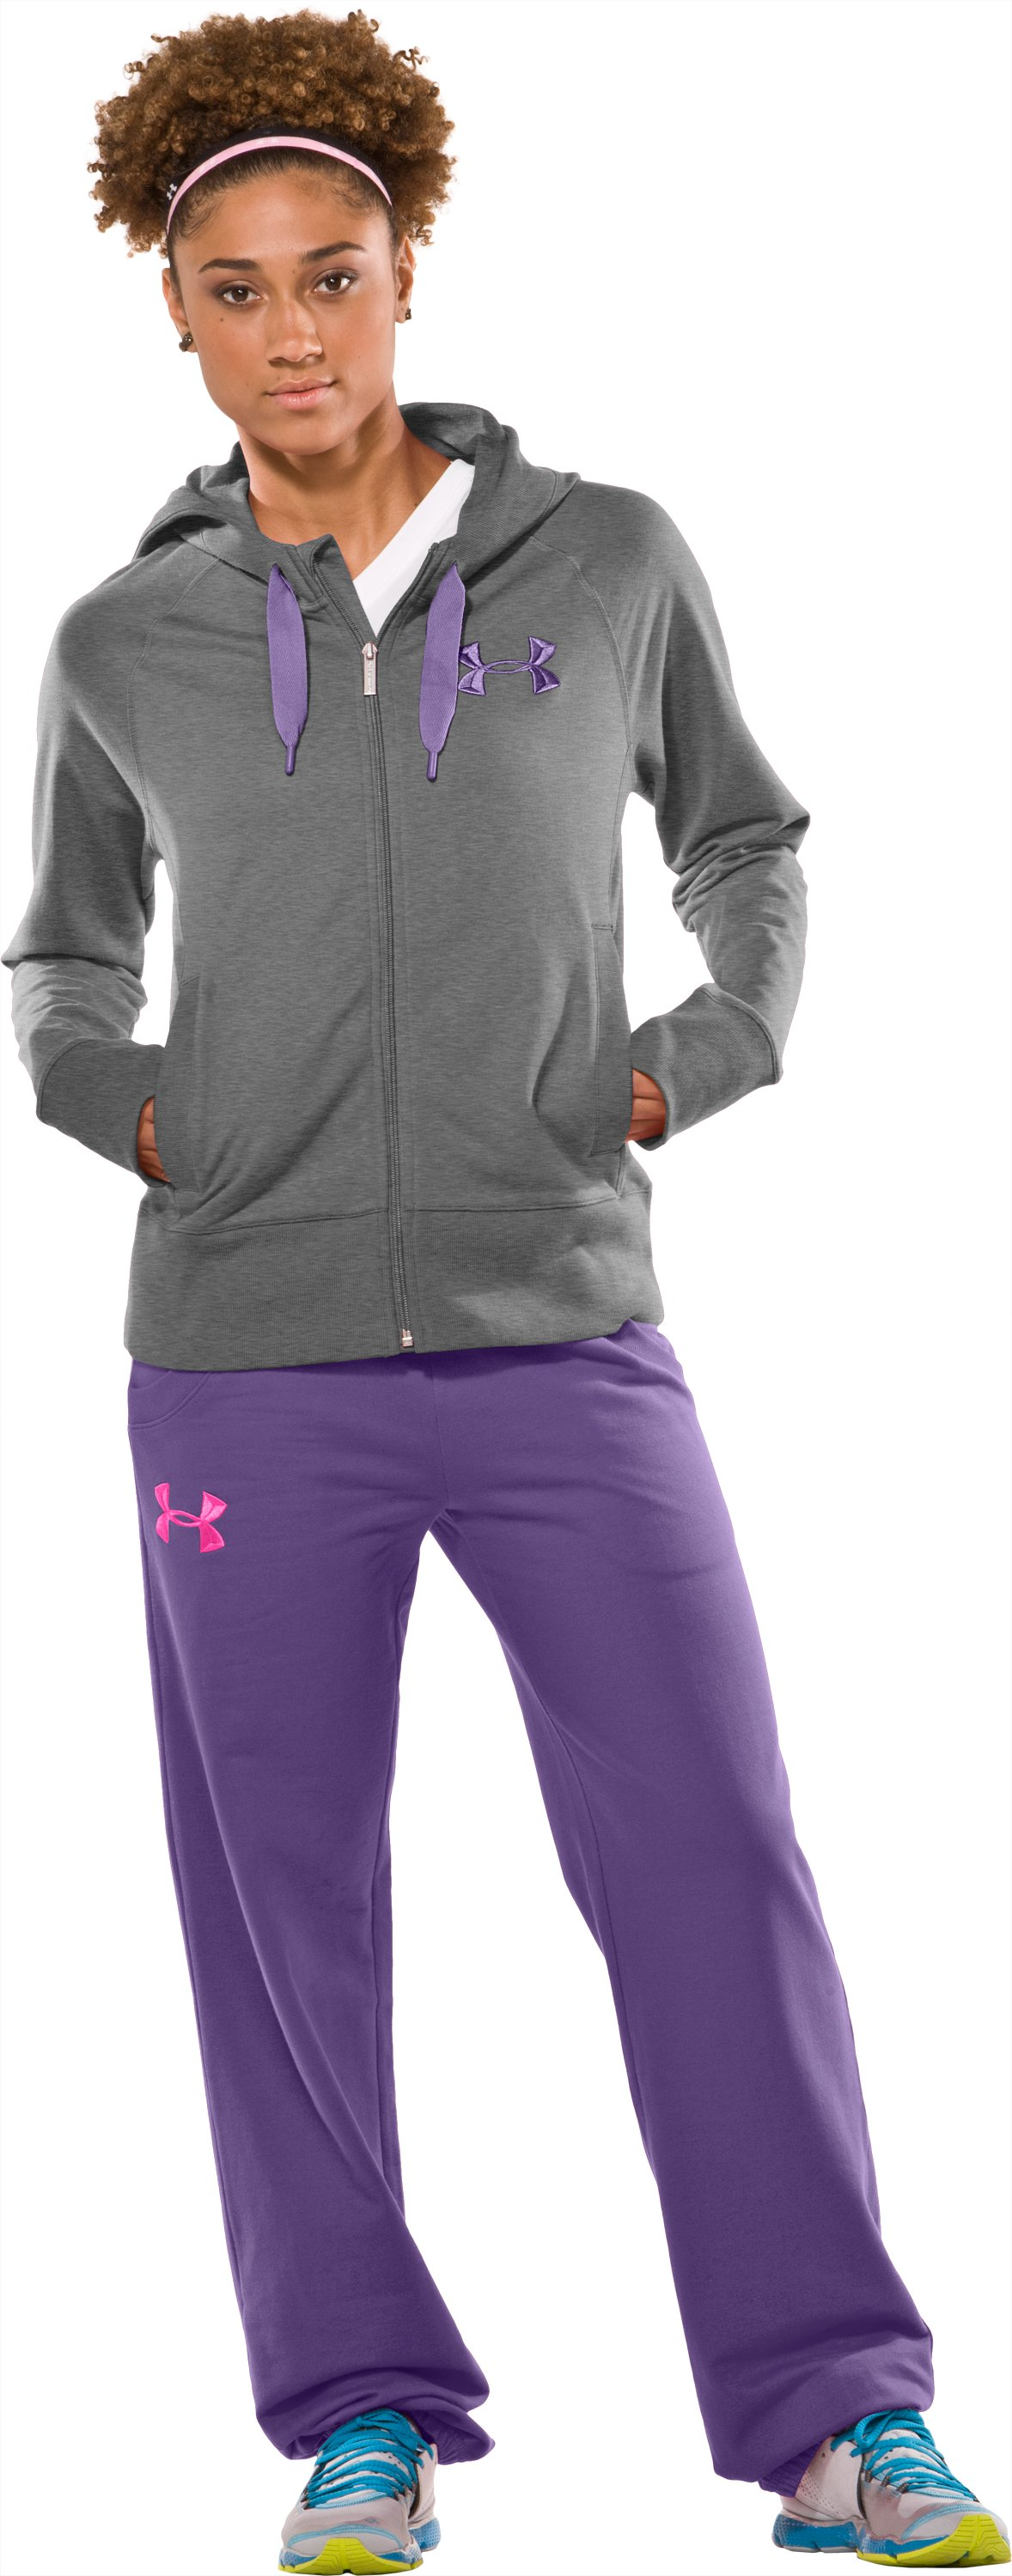 Women's UA Light Charged Cotton® Storm Full Zip, True Gray Heather, zoomed image